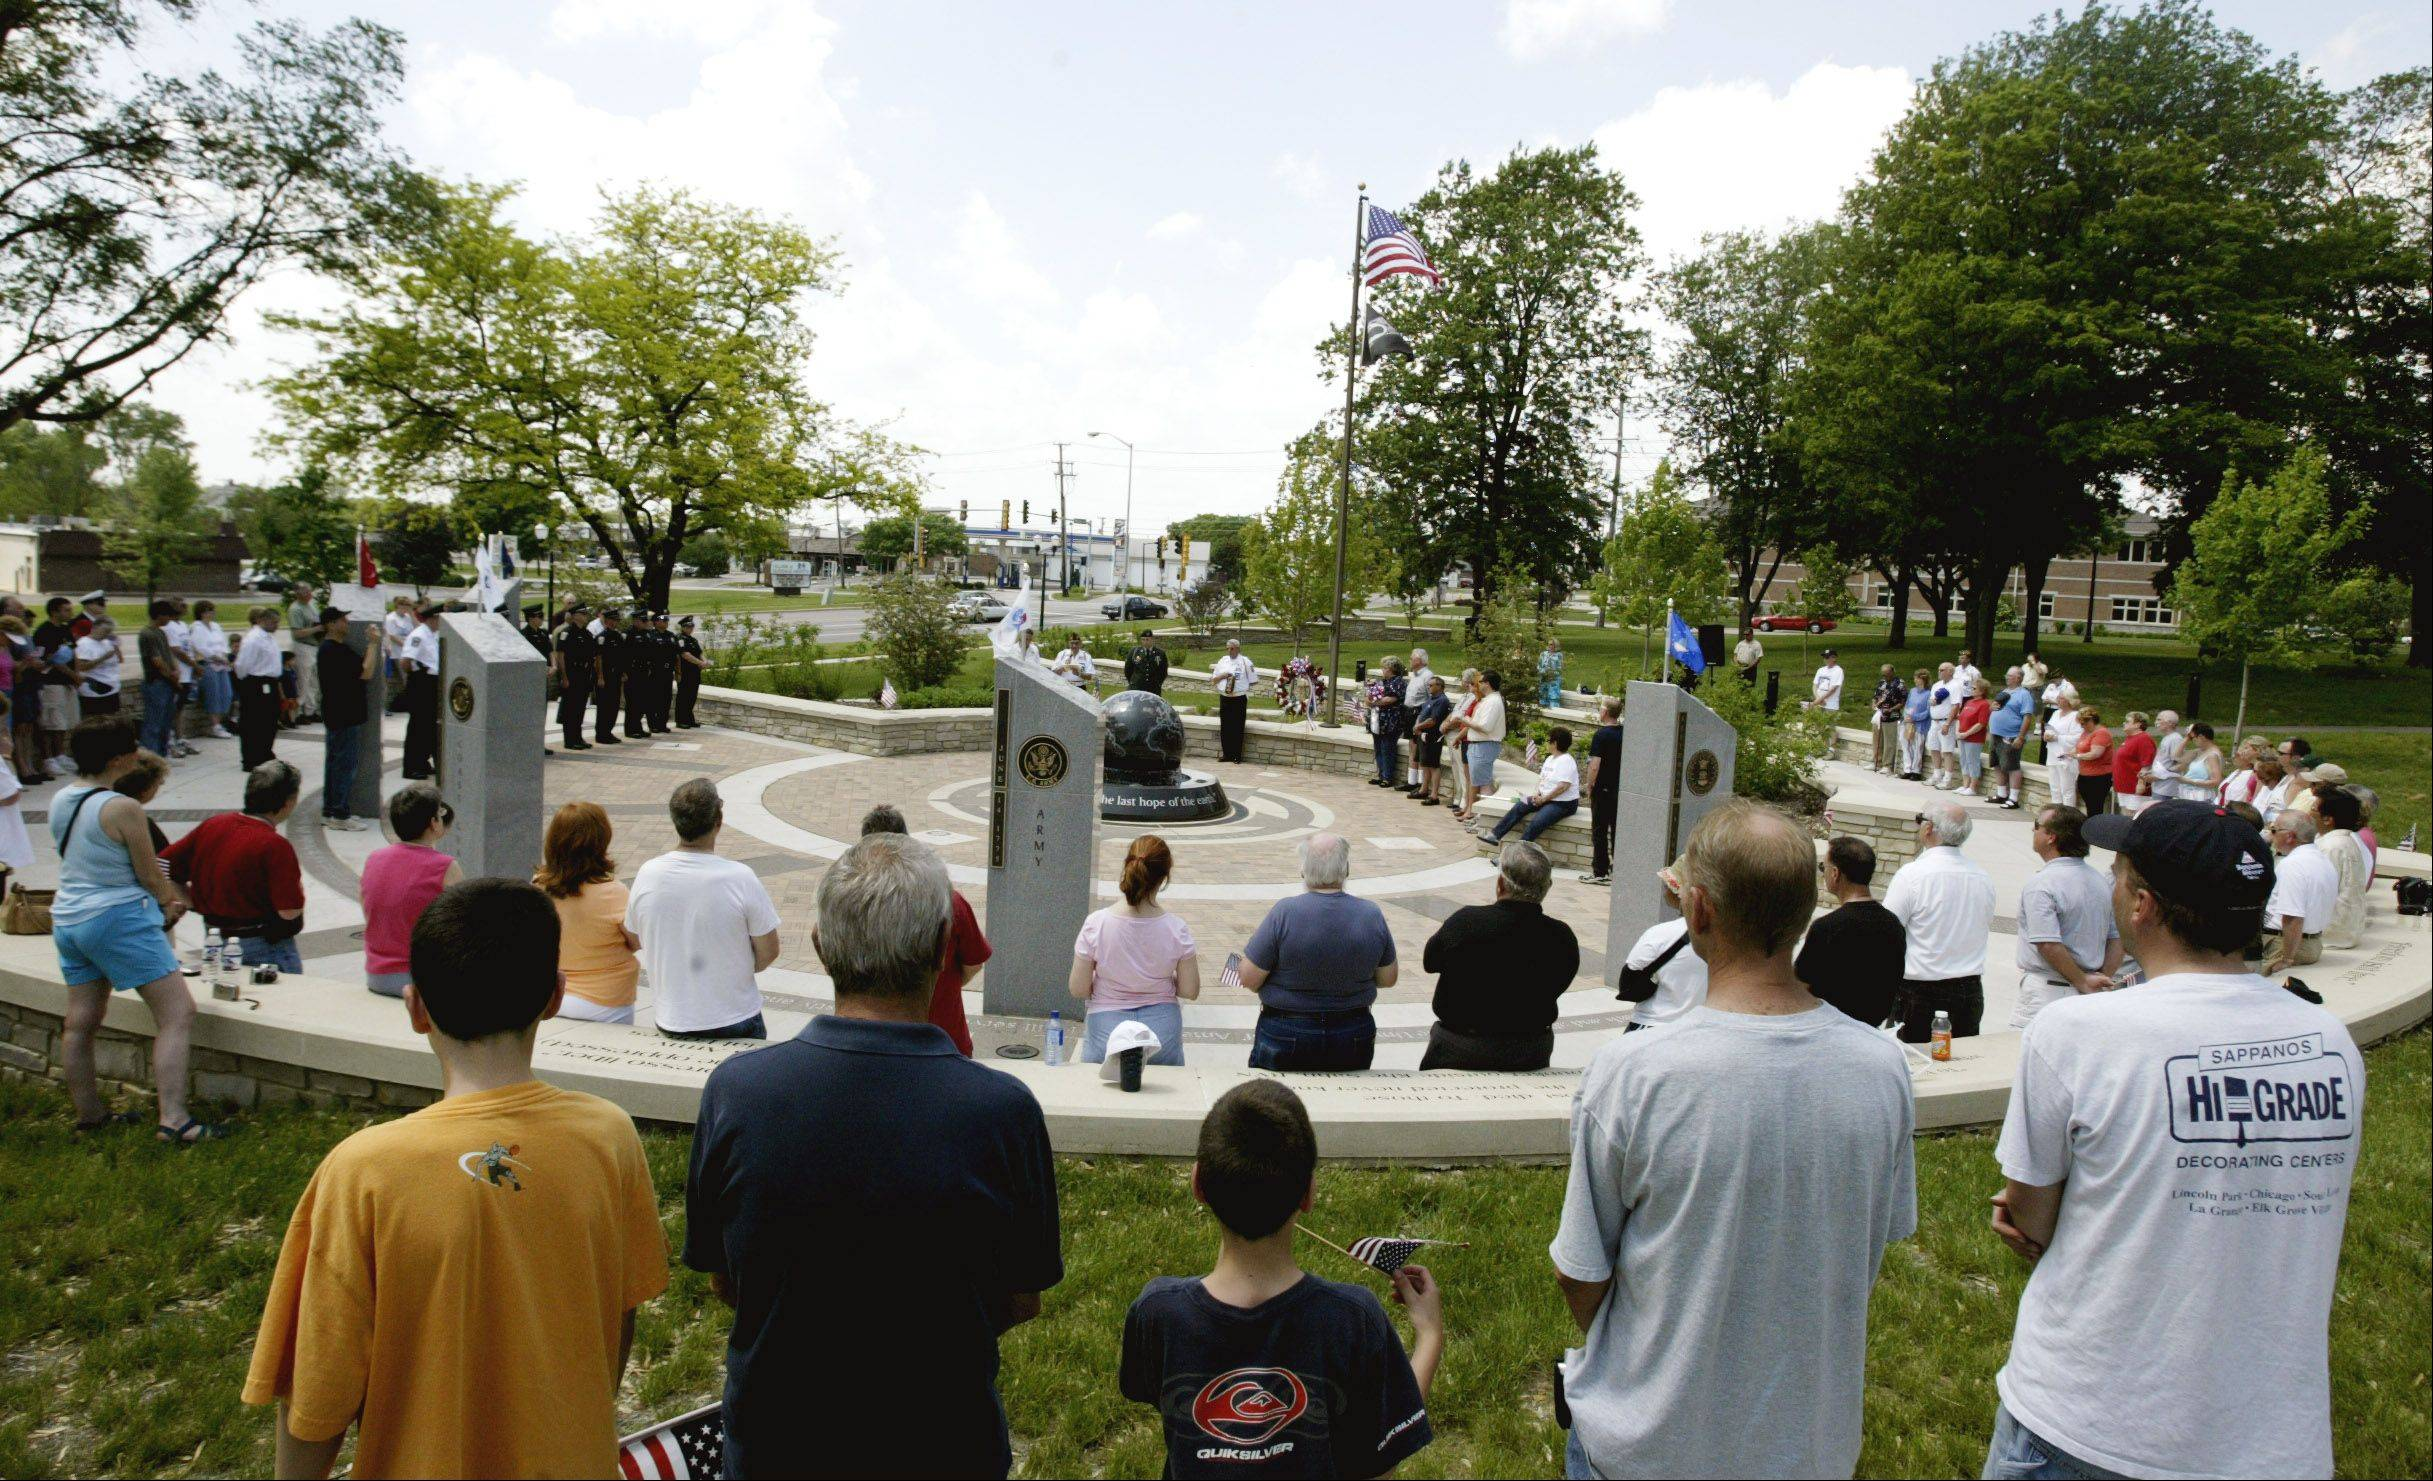 A drive will begin Sunday to raise money for a digital system to play taps at dusk every evening at Veterans Memorial Park in Glendale Heights.